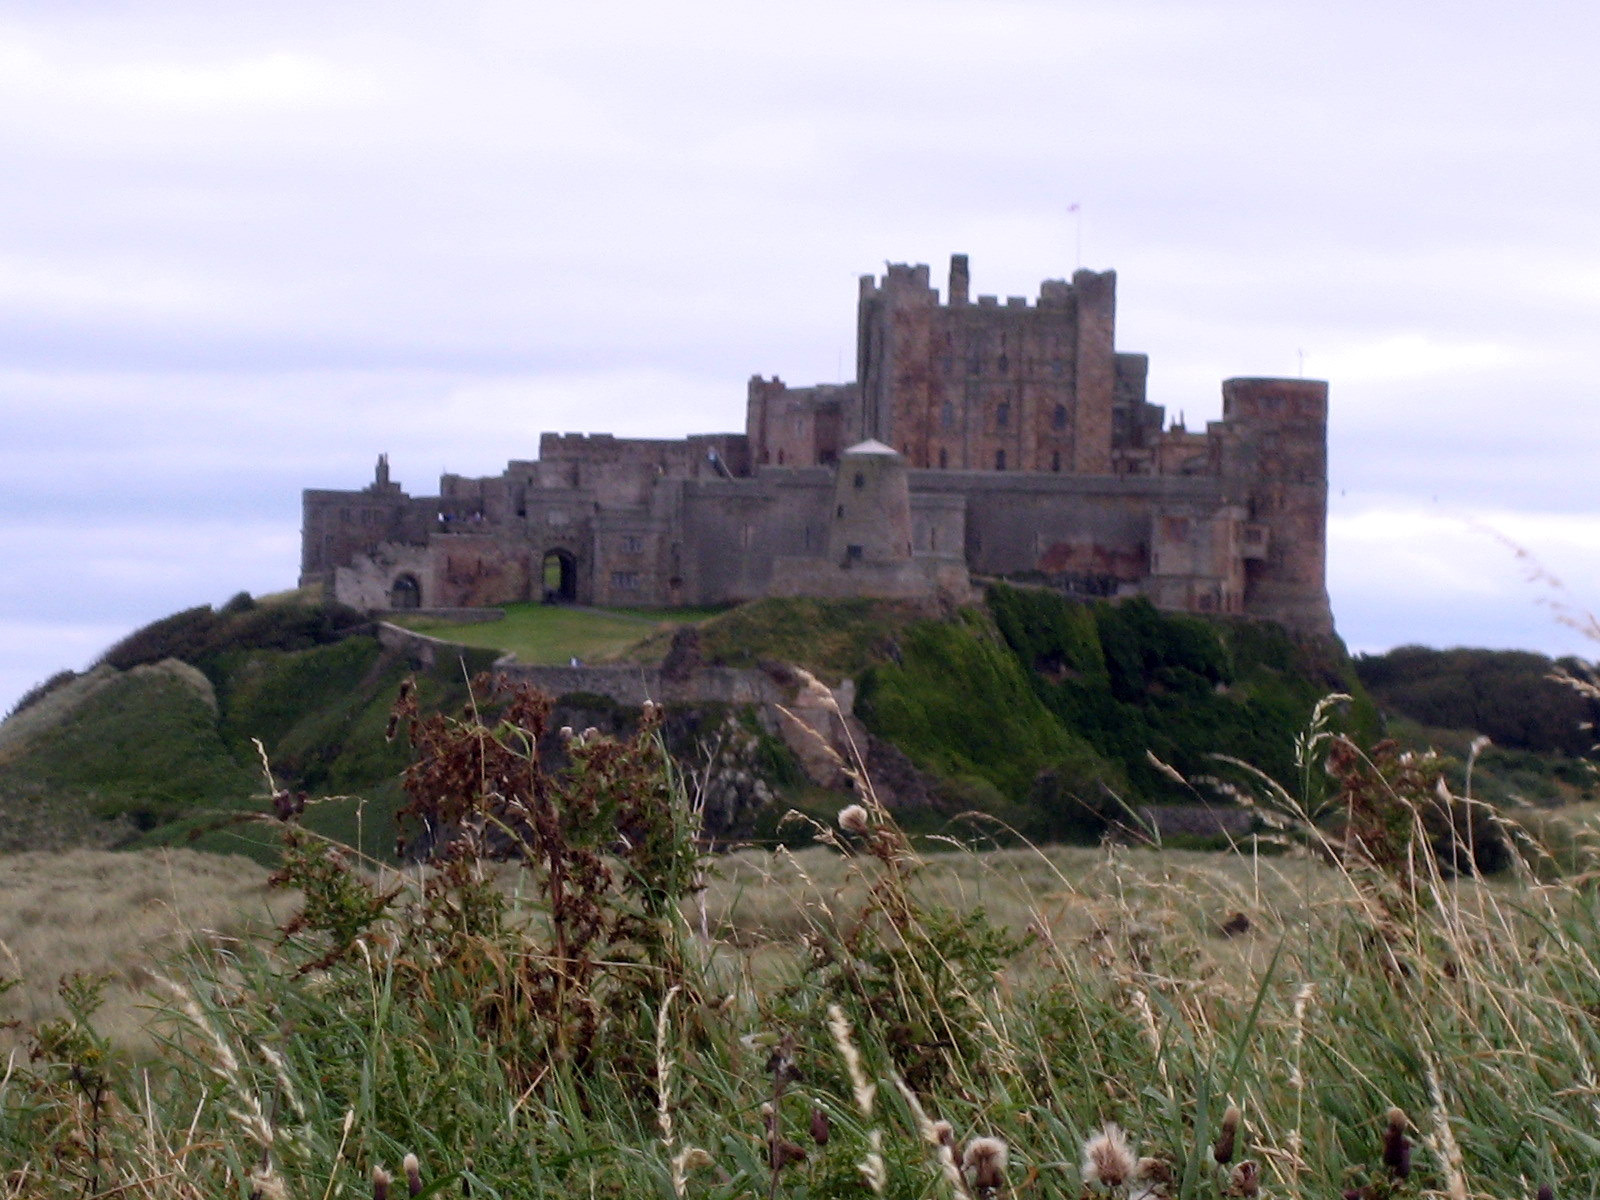 bamburgh castle - photo #43